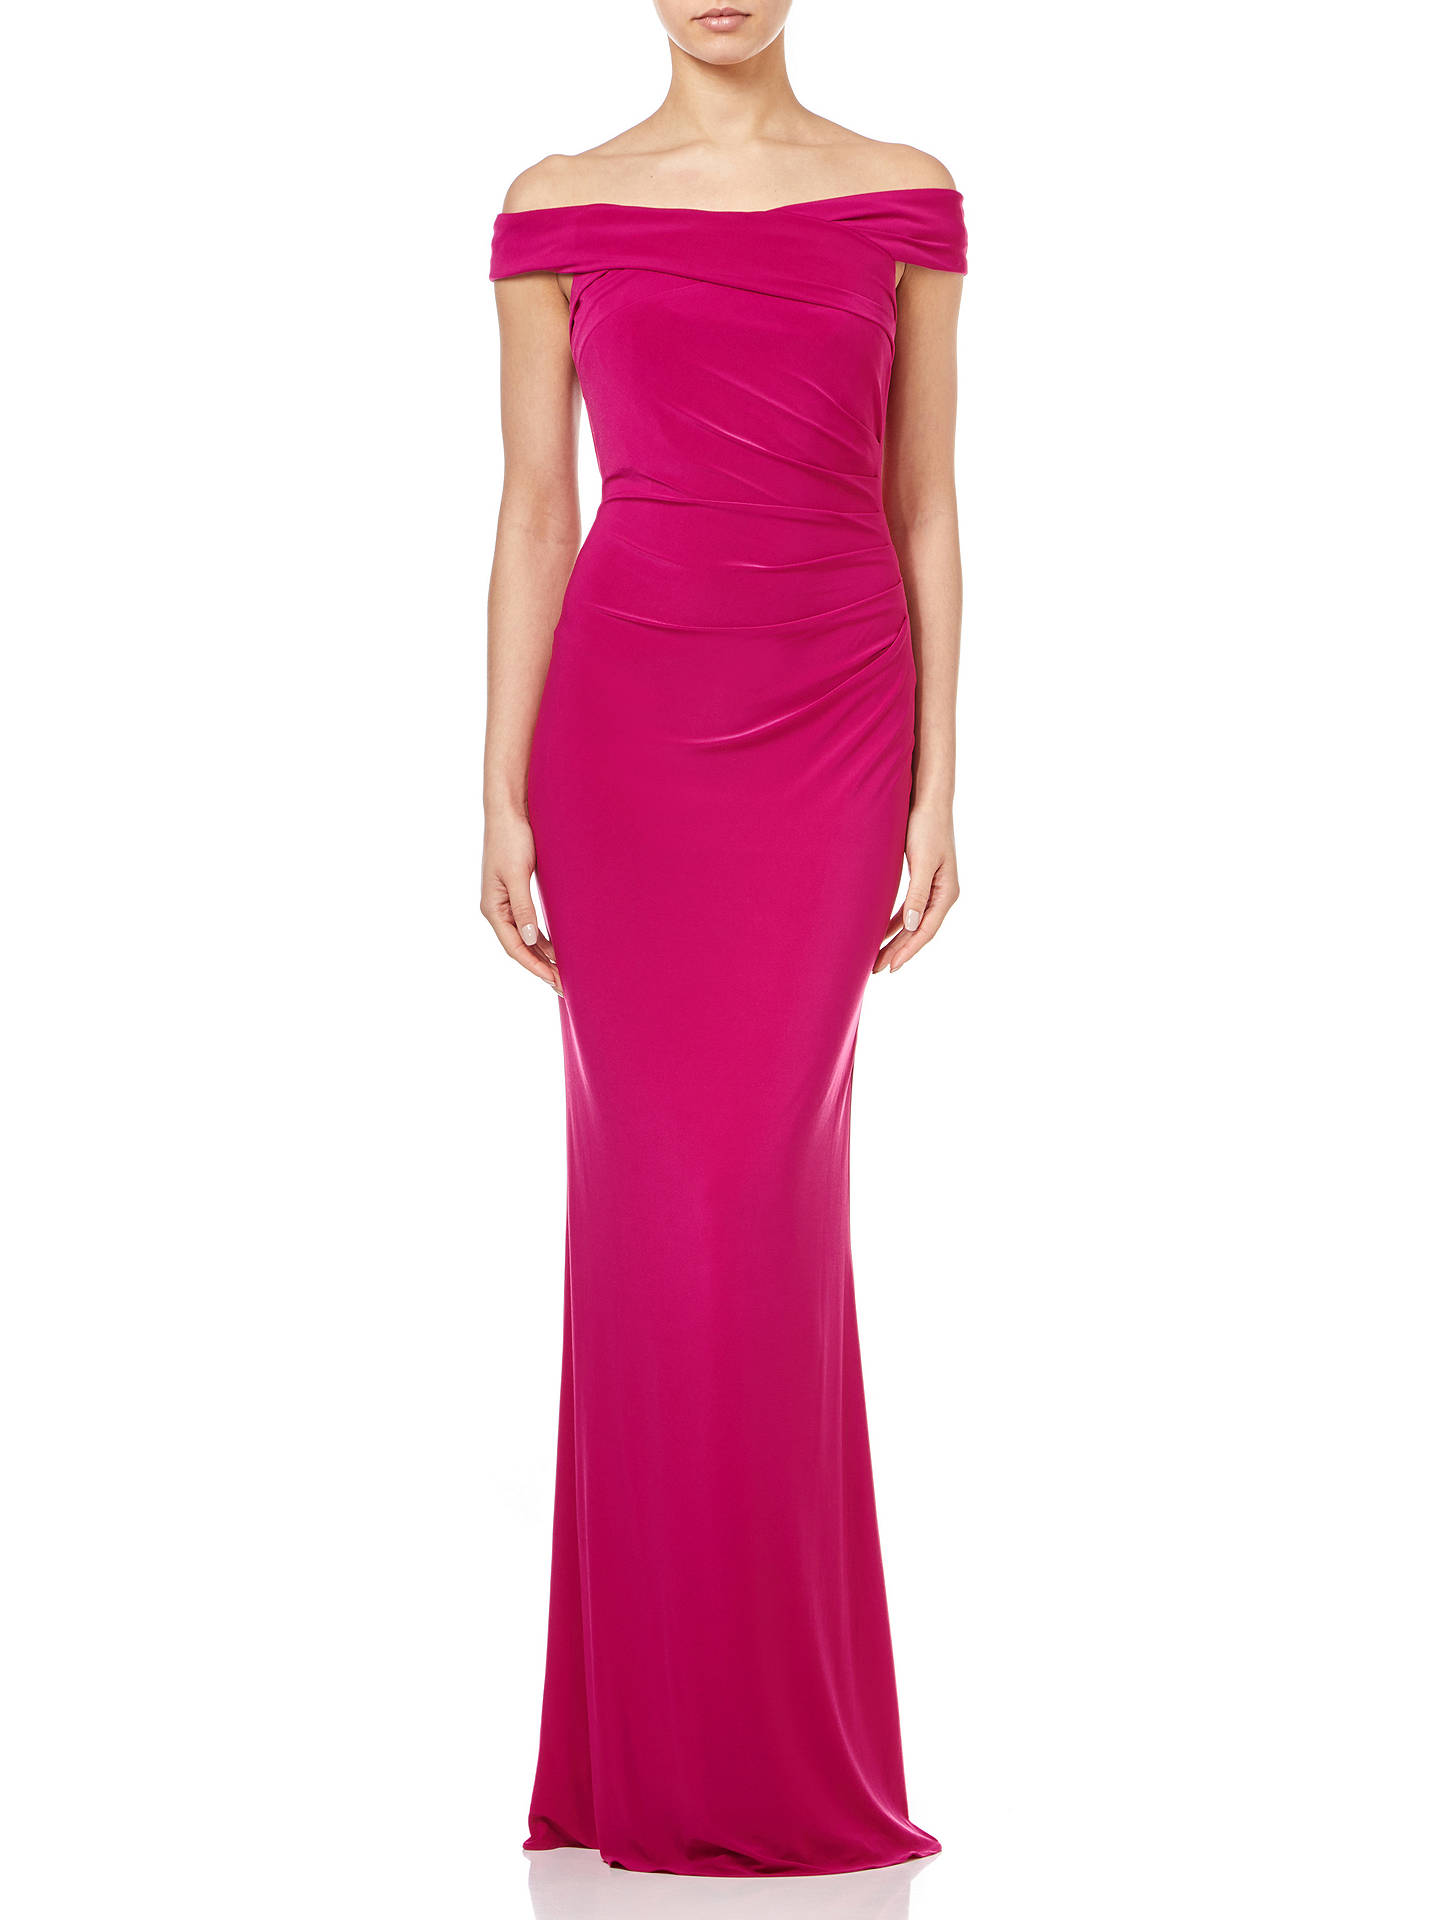 0f61ea8580bd Buy Adrianna Papell Off the Shoulder Jersey Gown, Bright Syrah, 18 Online  at johnlewis ...